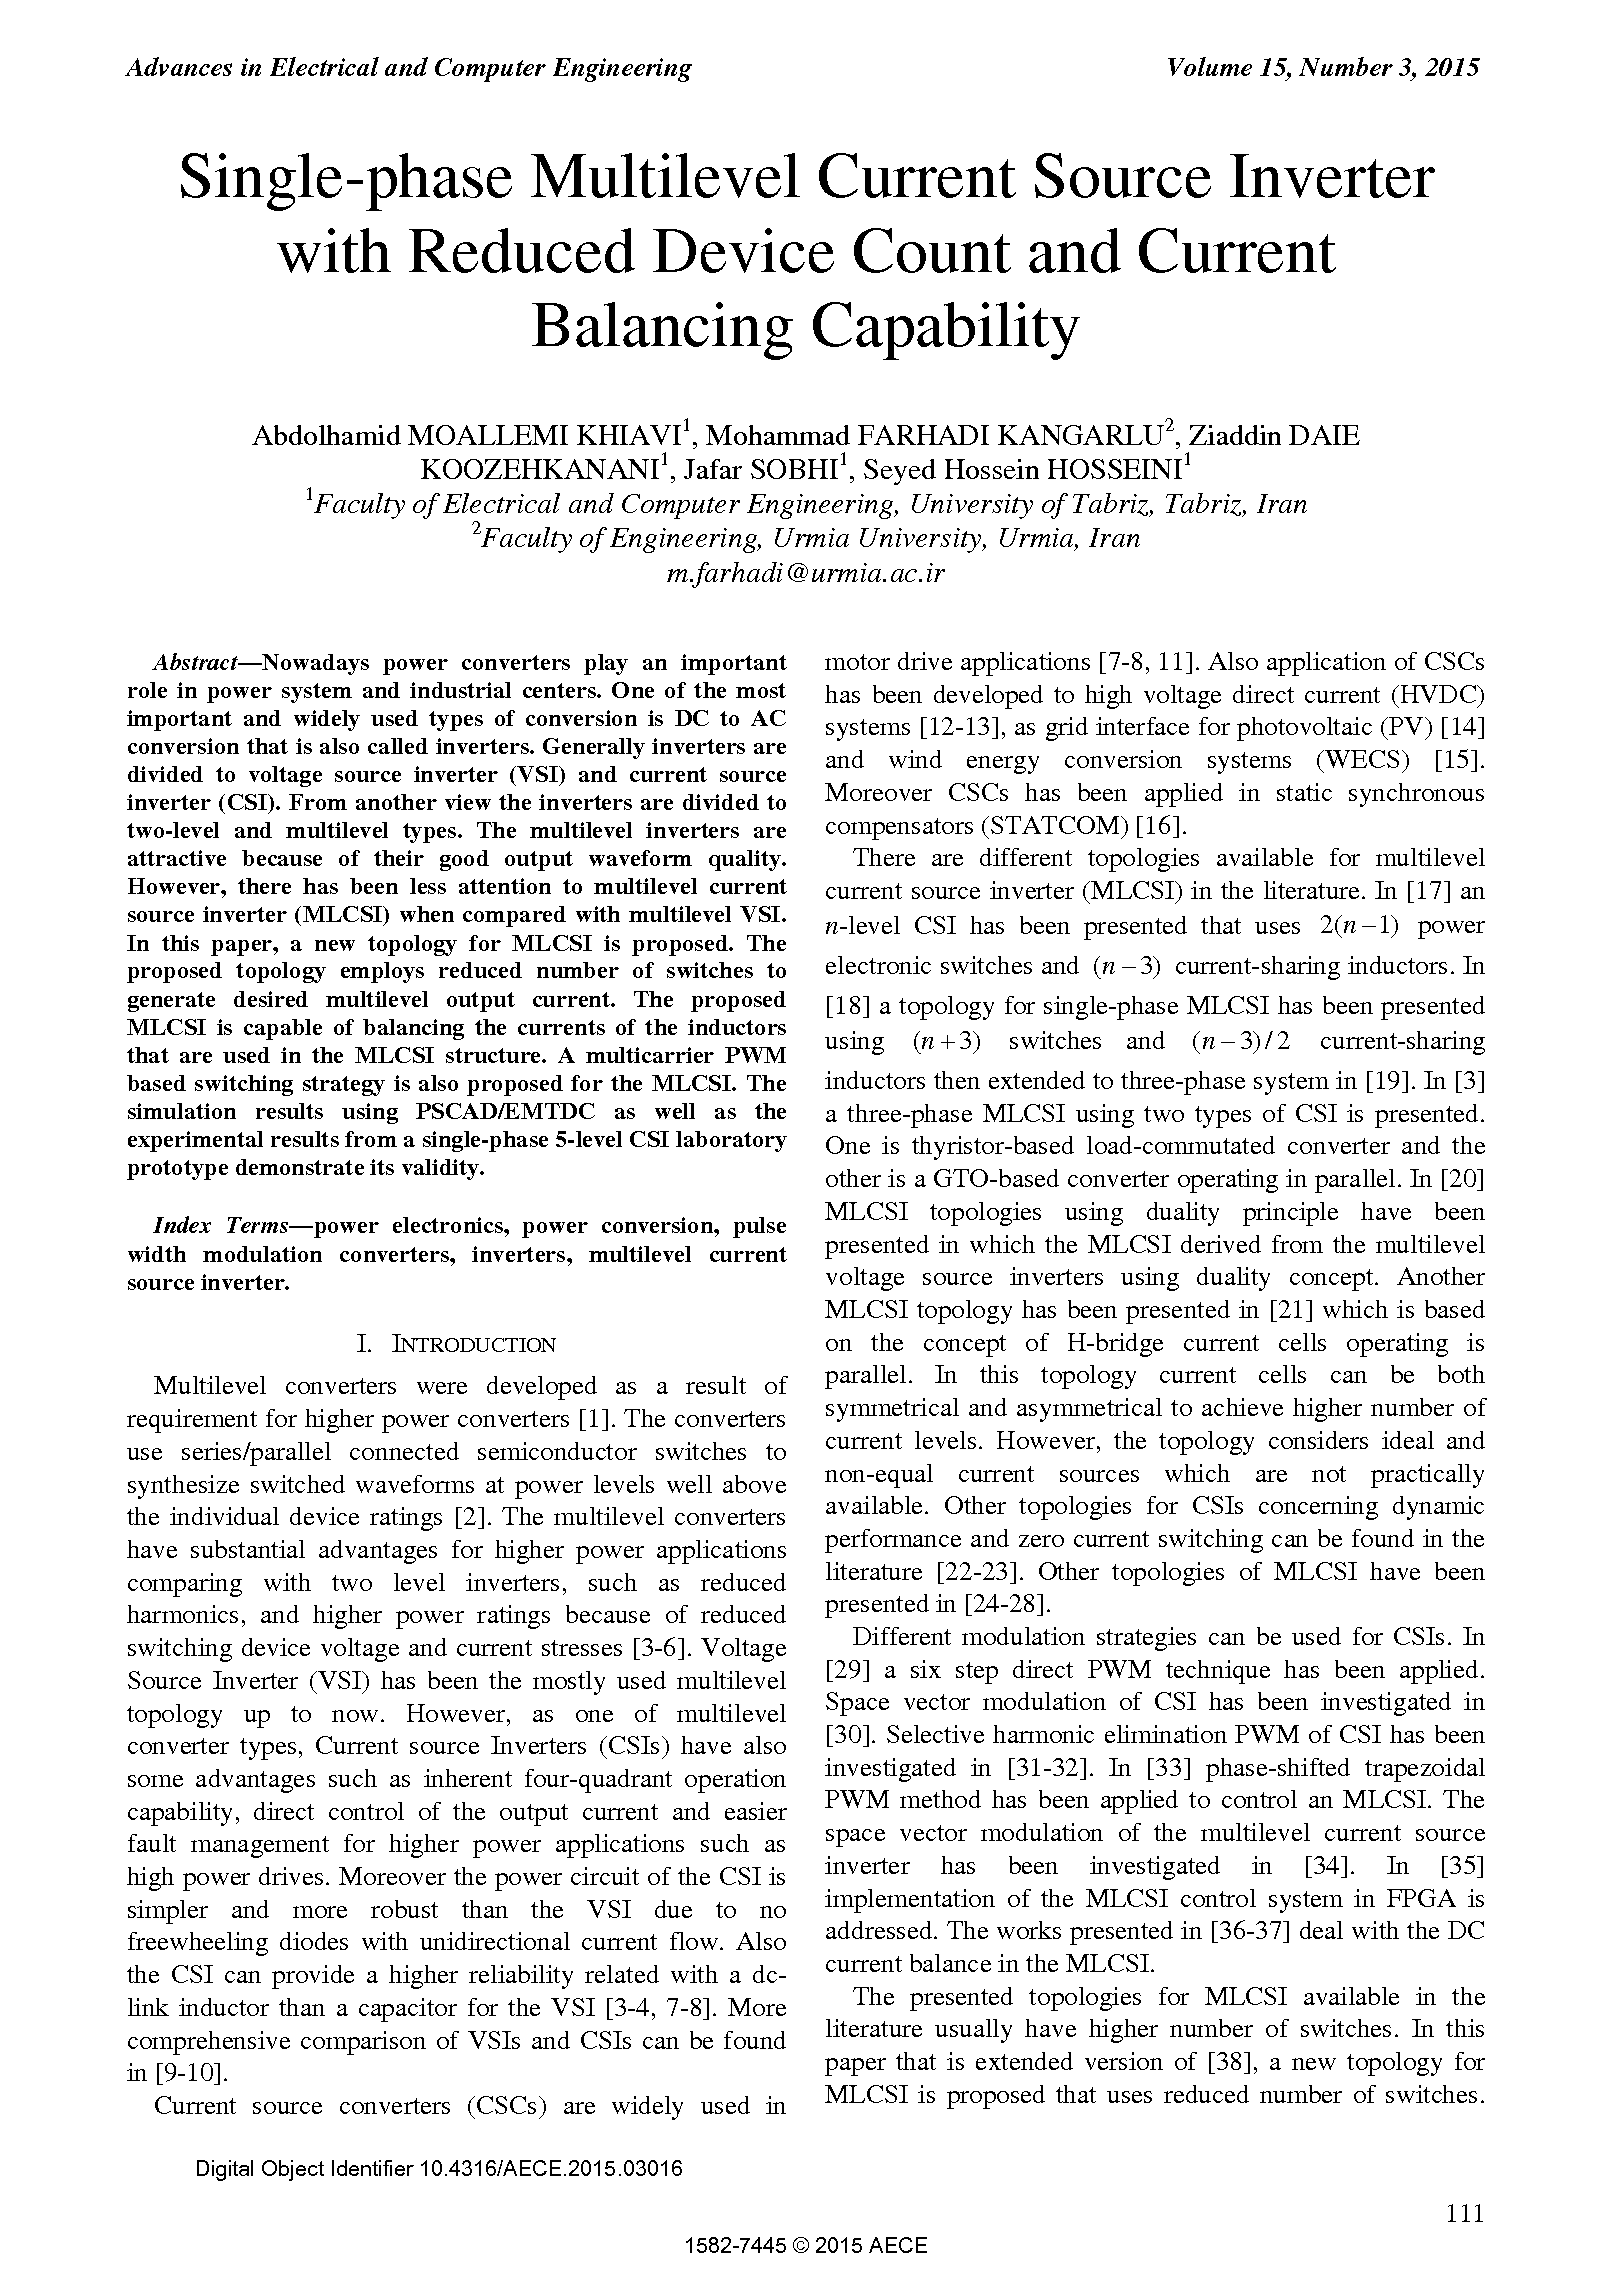 PDF Quickview for paper with DOI:10.4316/AECE.2015.03016